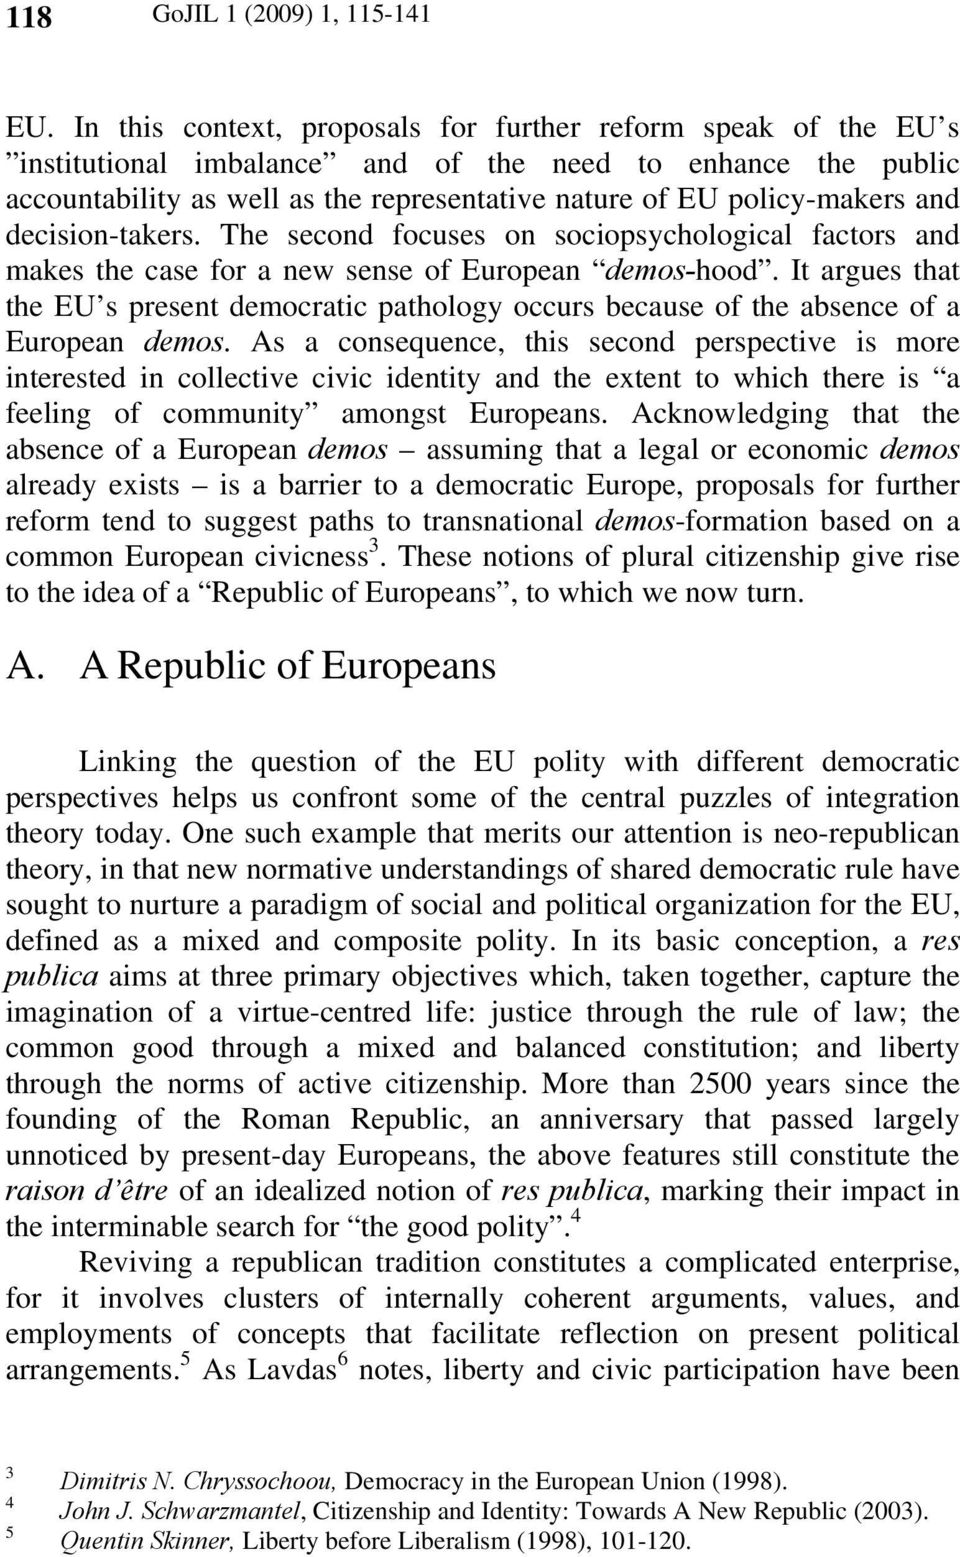 and decision-takers. The second focuses on sociopsychological factors and makes the case for a new sense of European demos-hood.